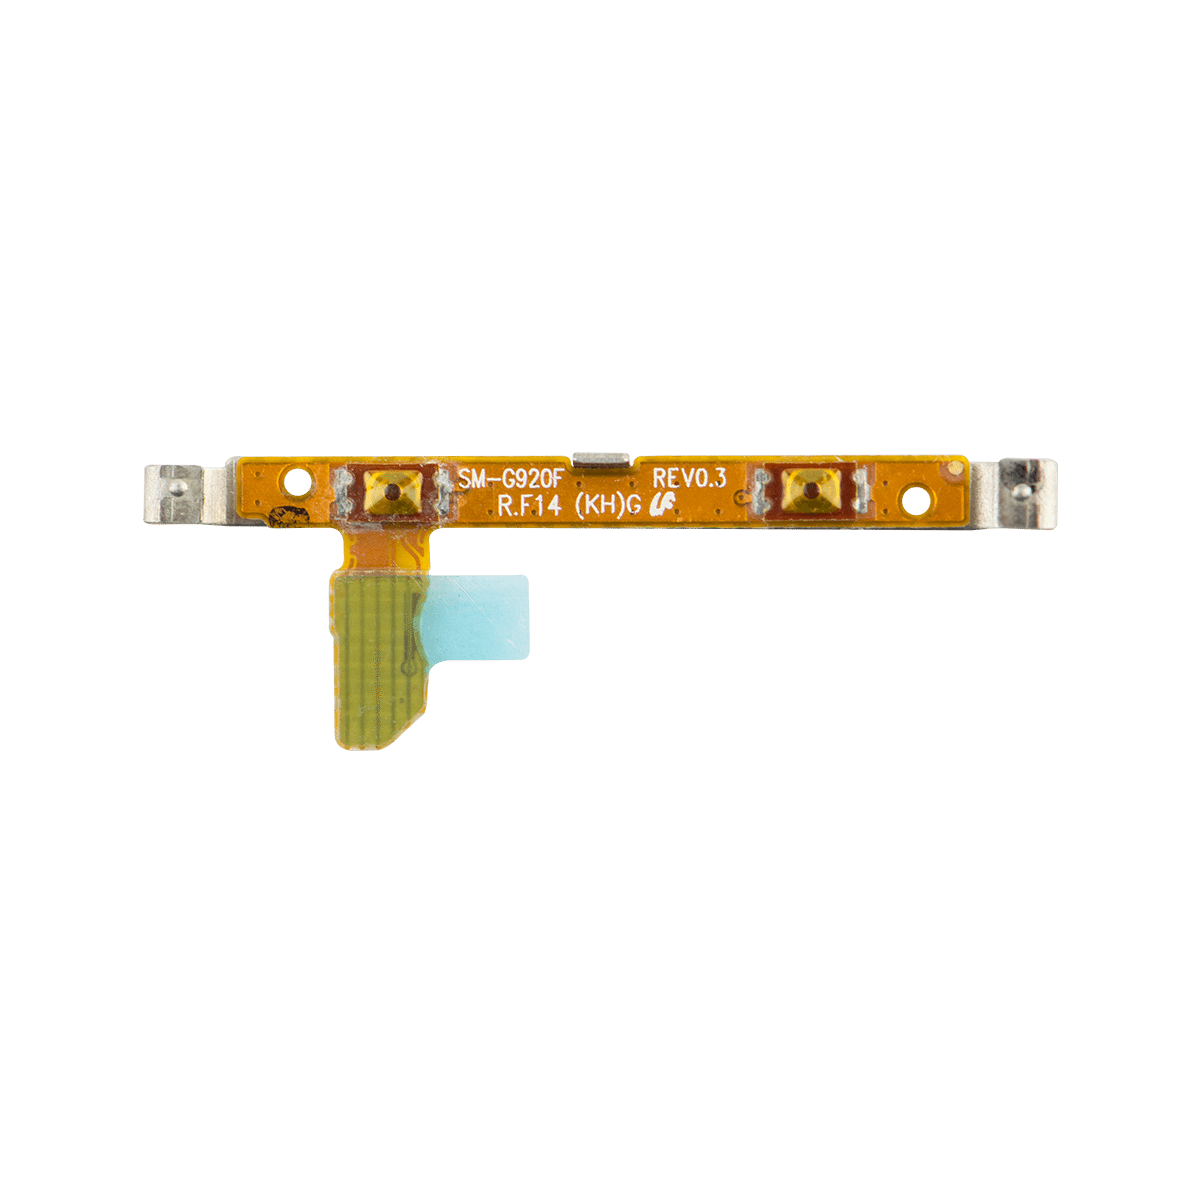 Samsung Galaxy S6 Volume Buttons Flex Cable Replacement